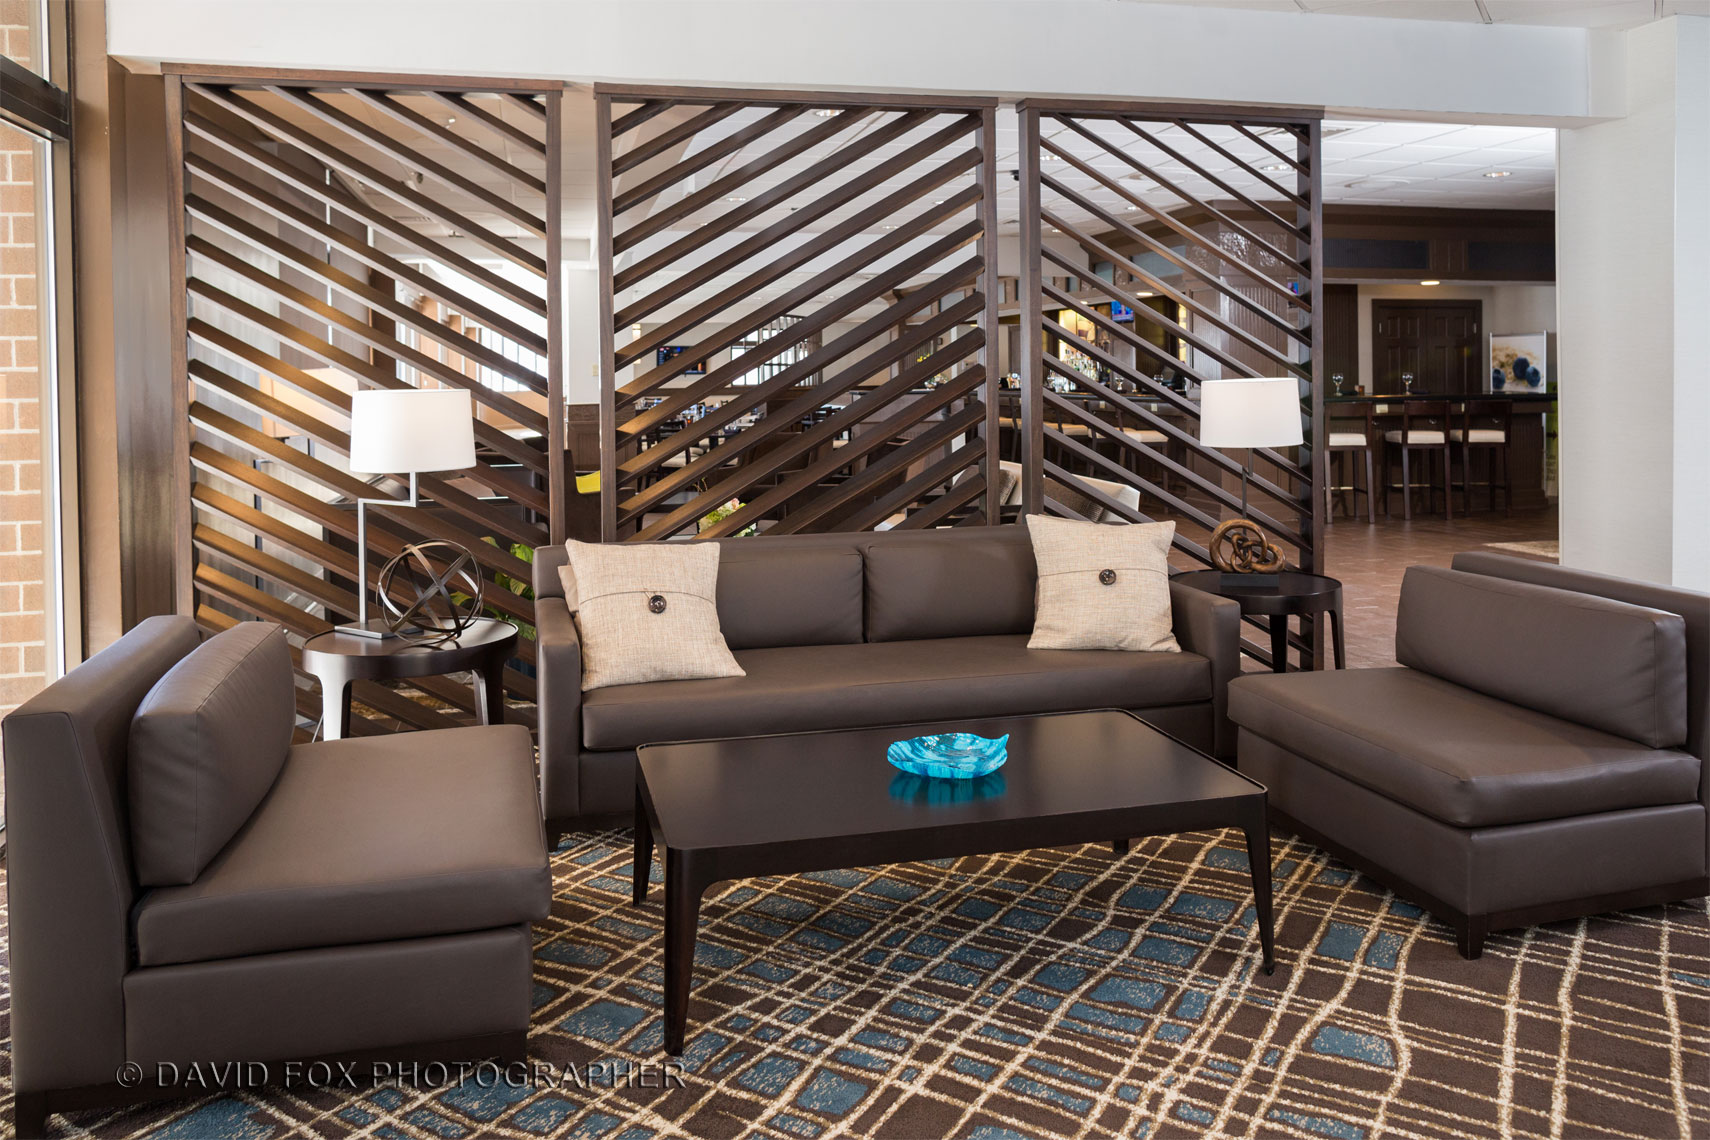 Interior Social Area DoubleTree Hilton Lobby David Fox Photographer